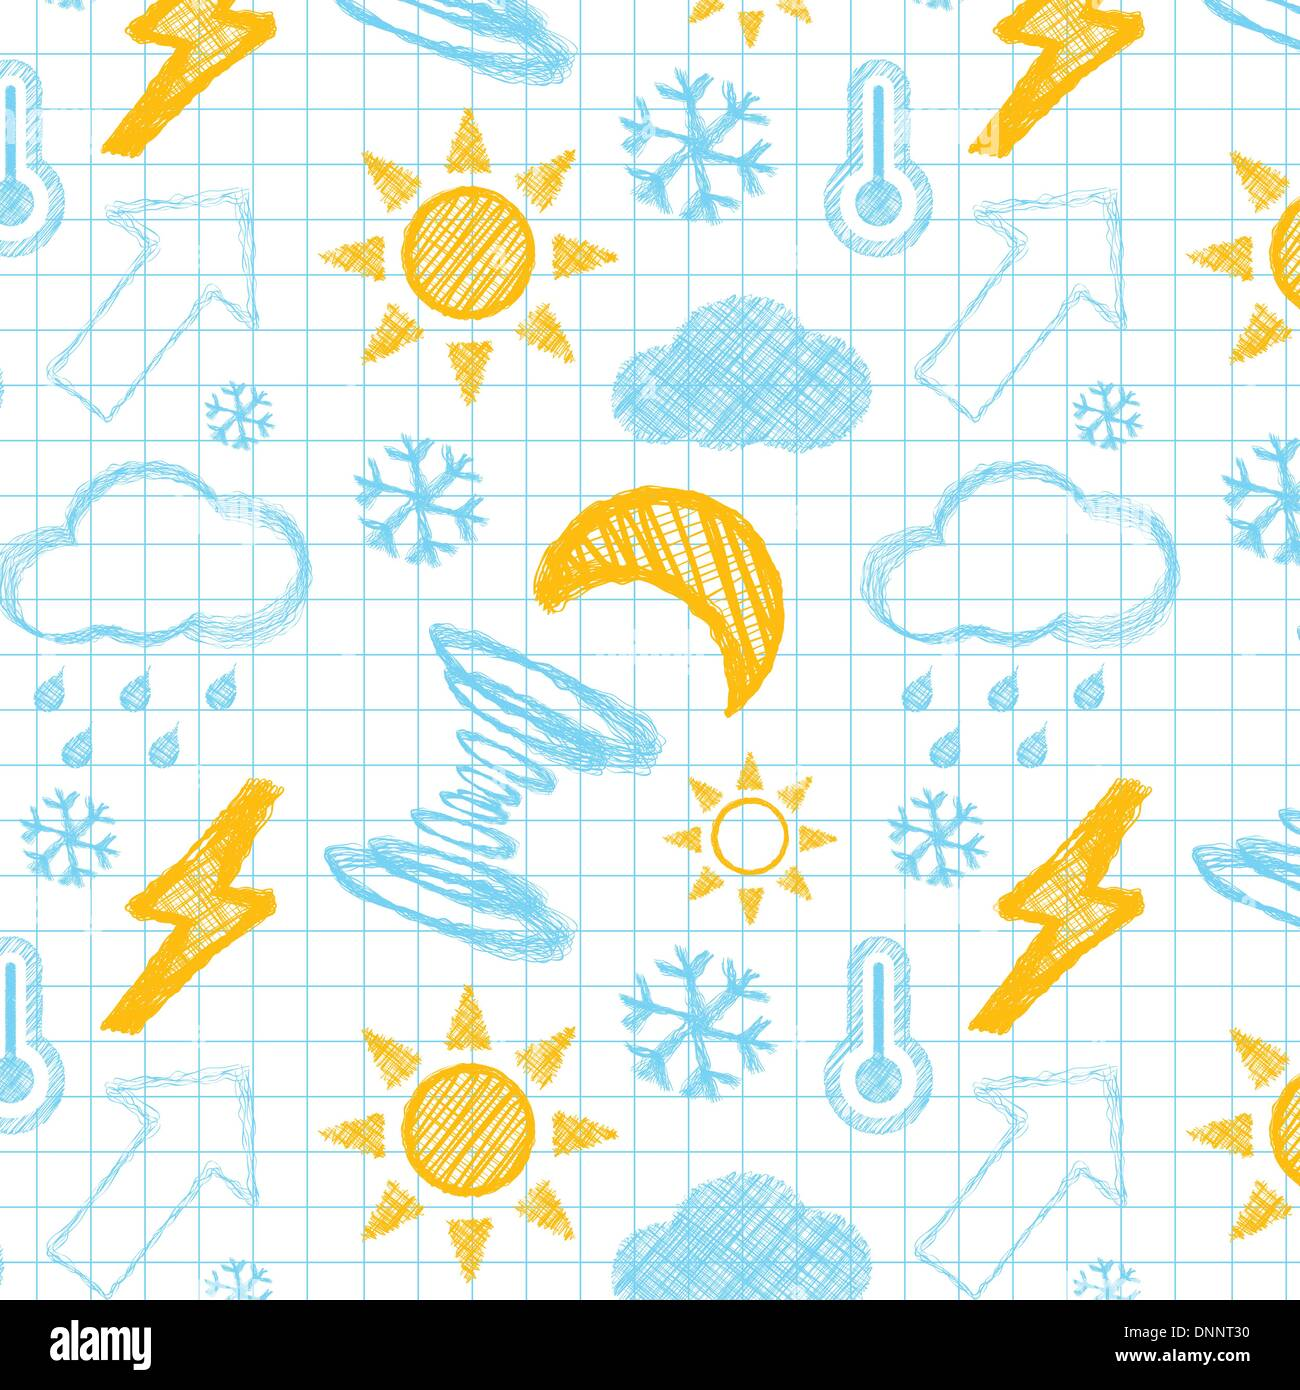 Météo hand drawn seamless pattern. Vectror illustration Photo Stock